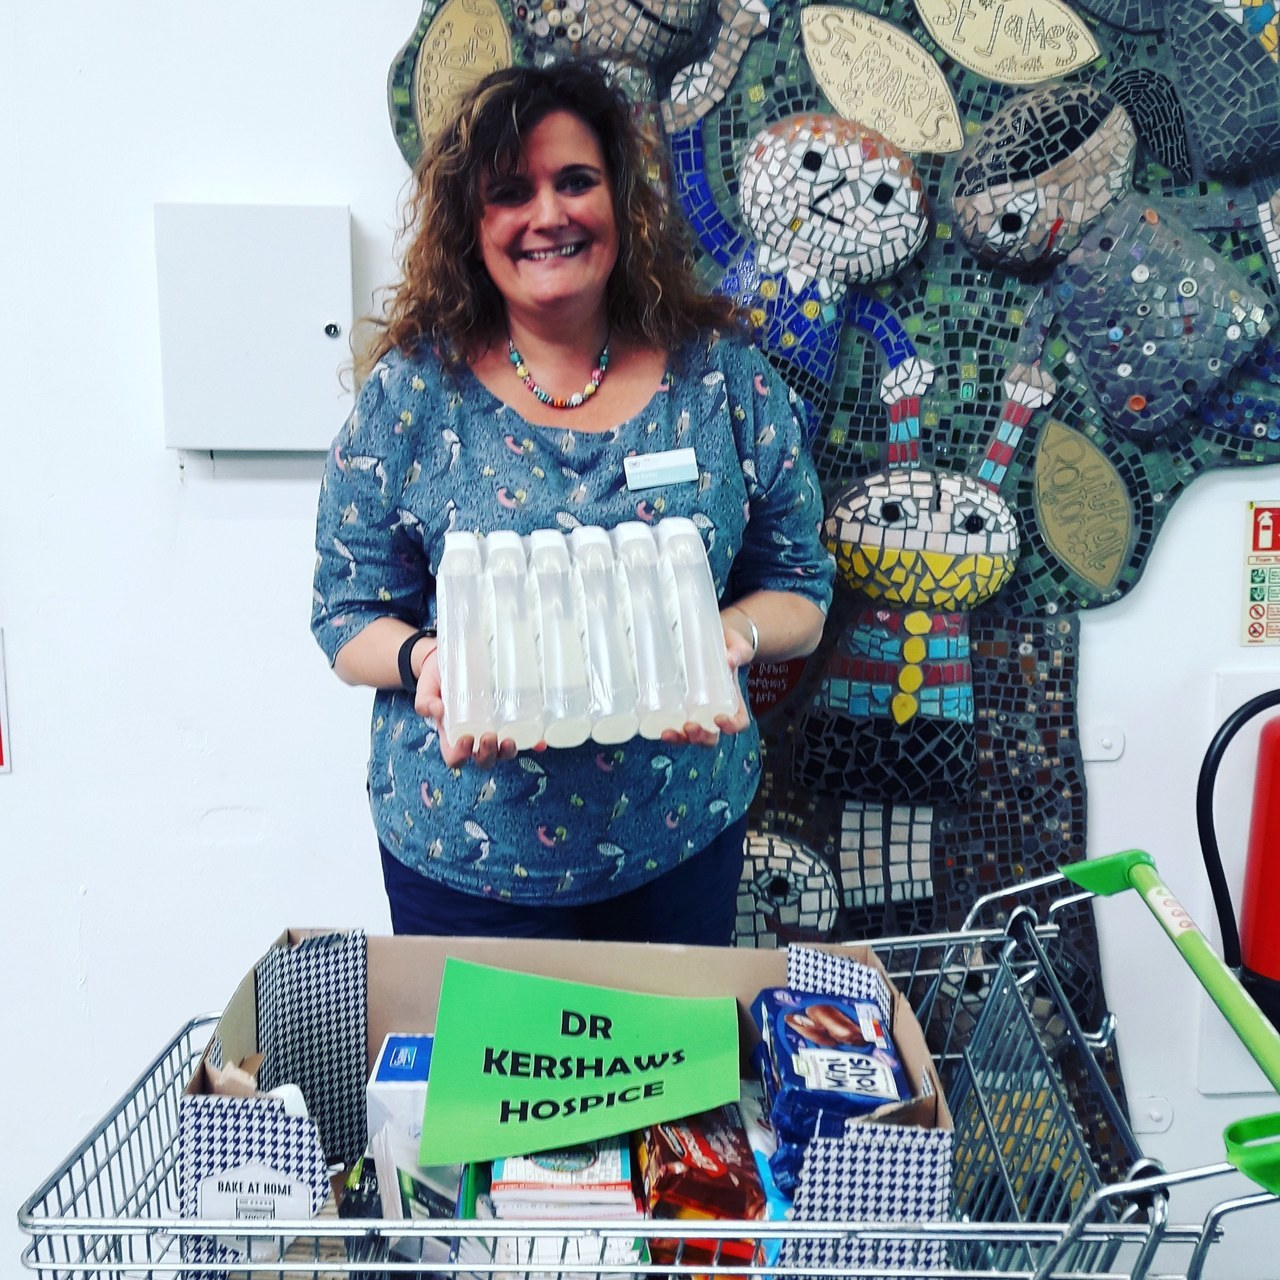 Donations to Dr Kershaw's Hospice andNorth Manchester Hospital | Asda Shaw